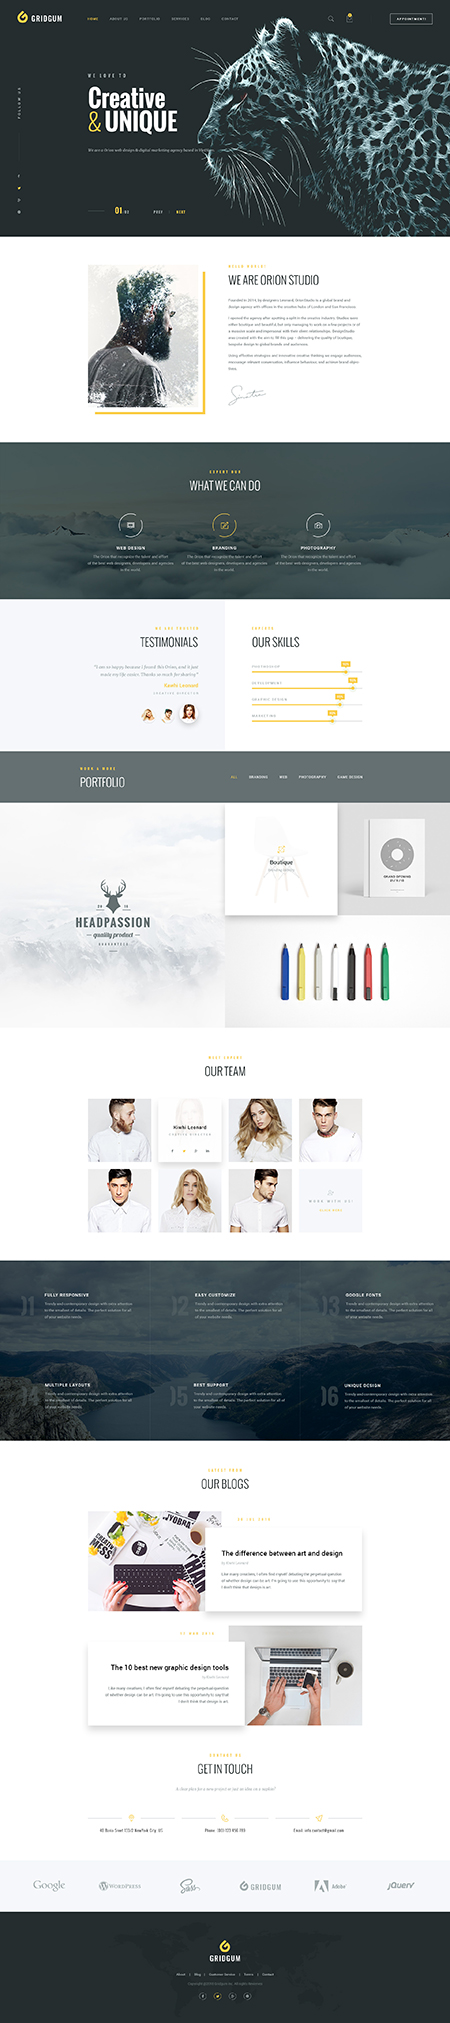 Creative Agnecy Bootstrap template ID: 300111932